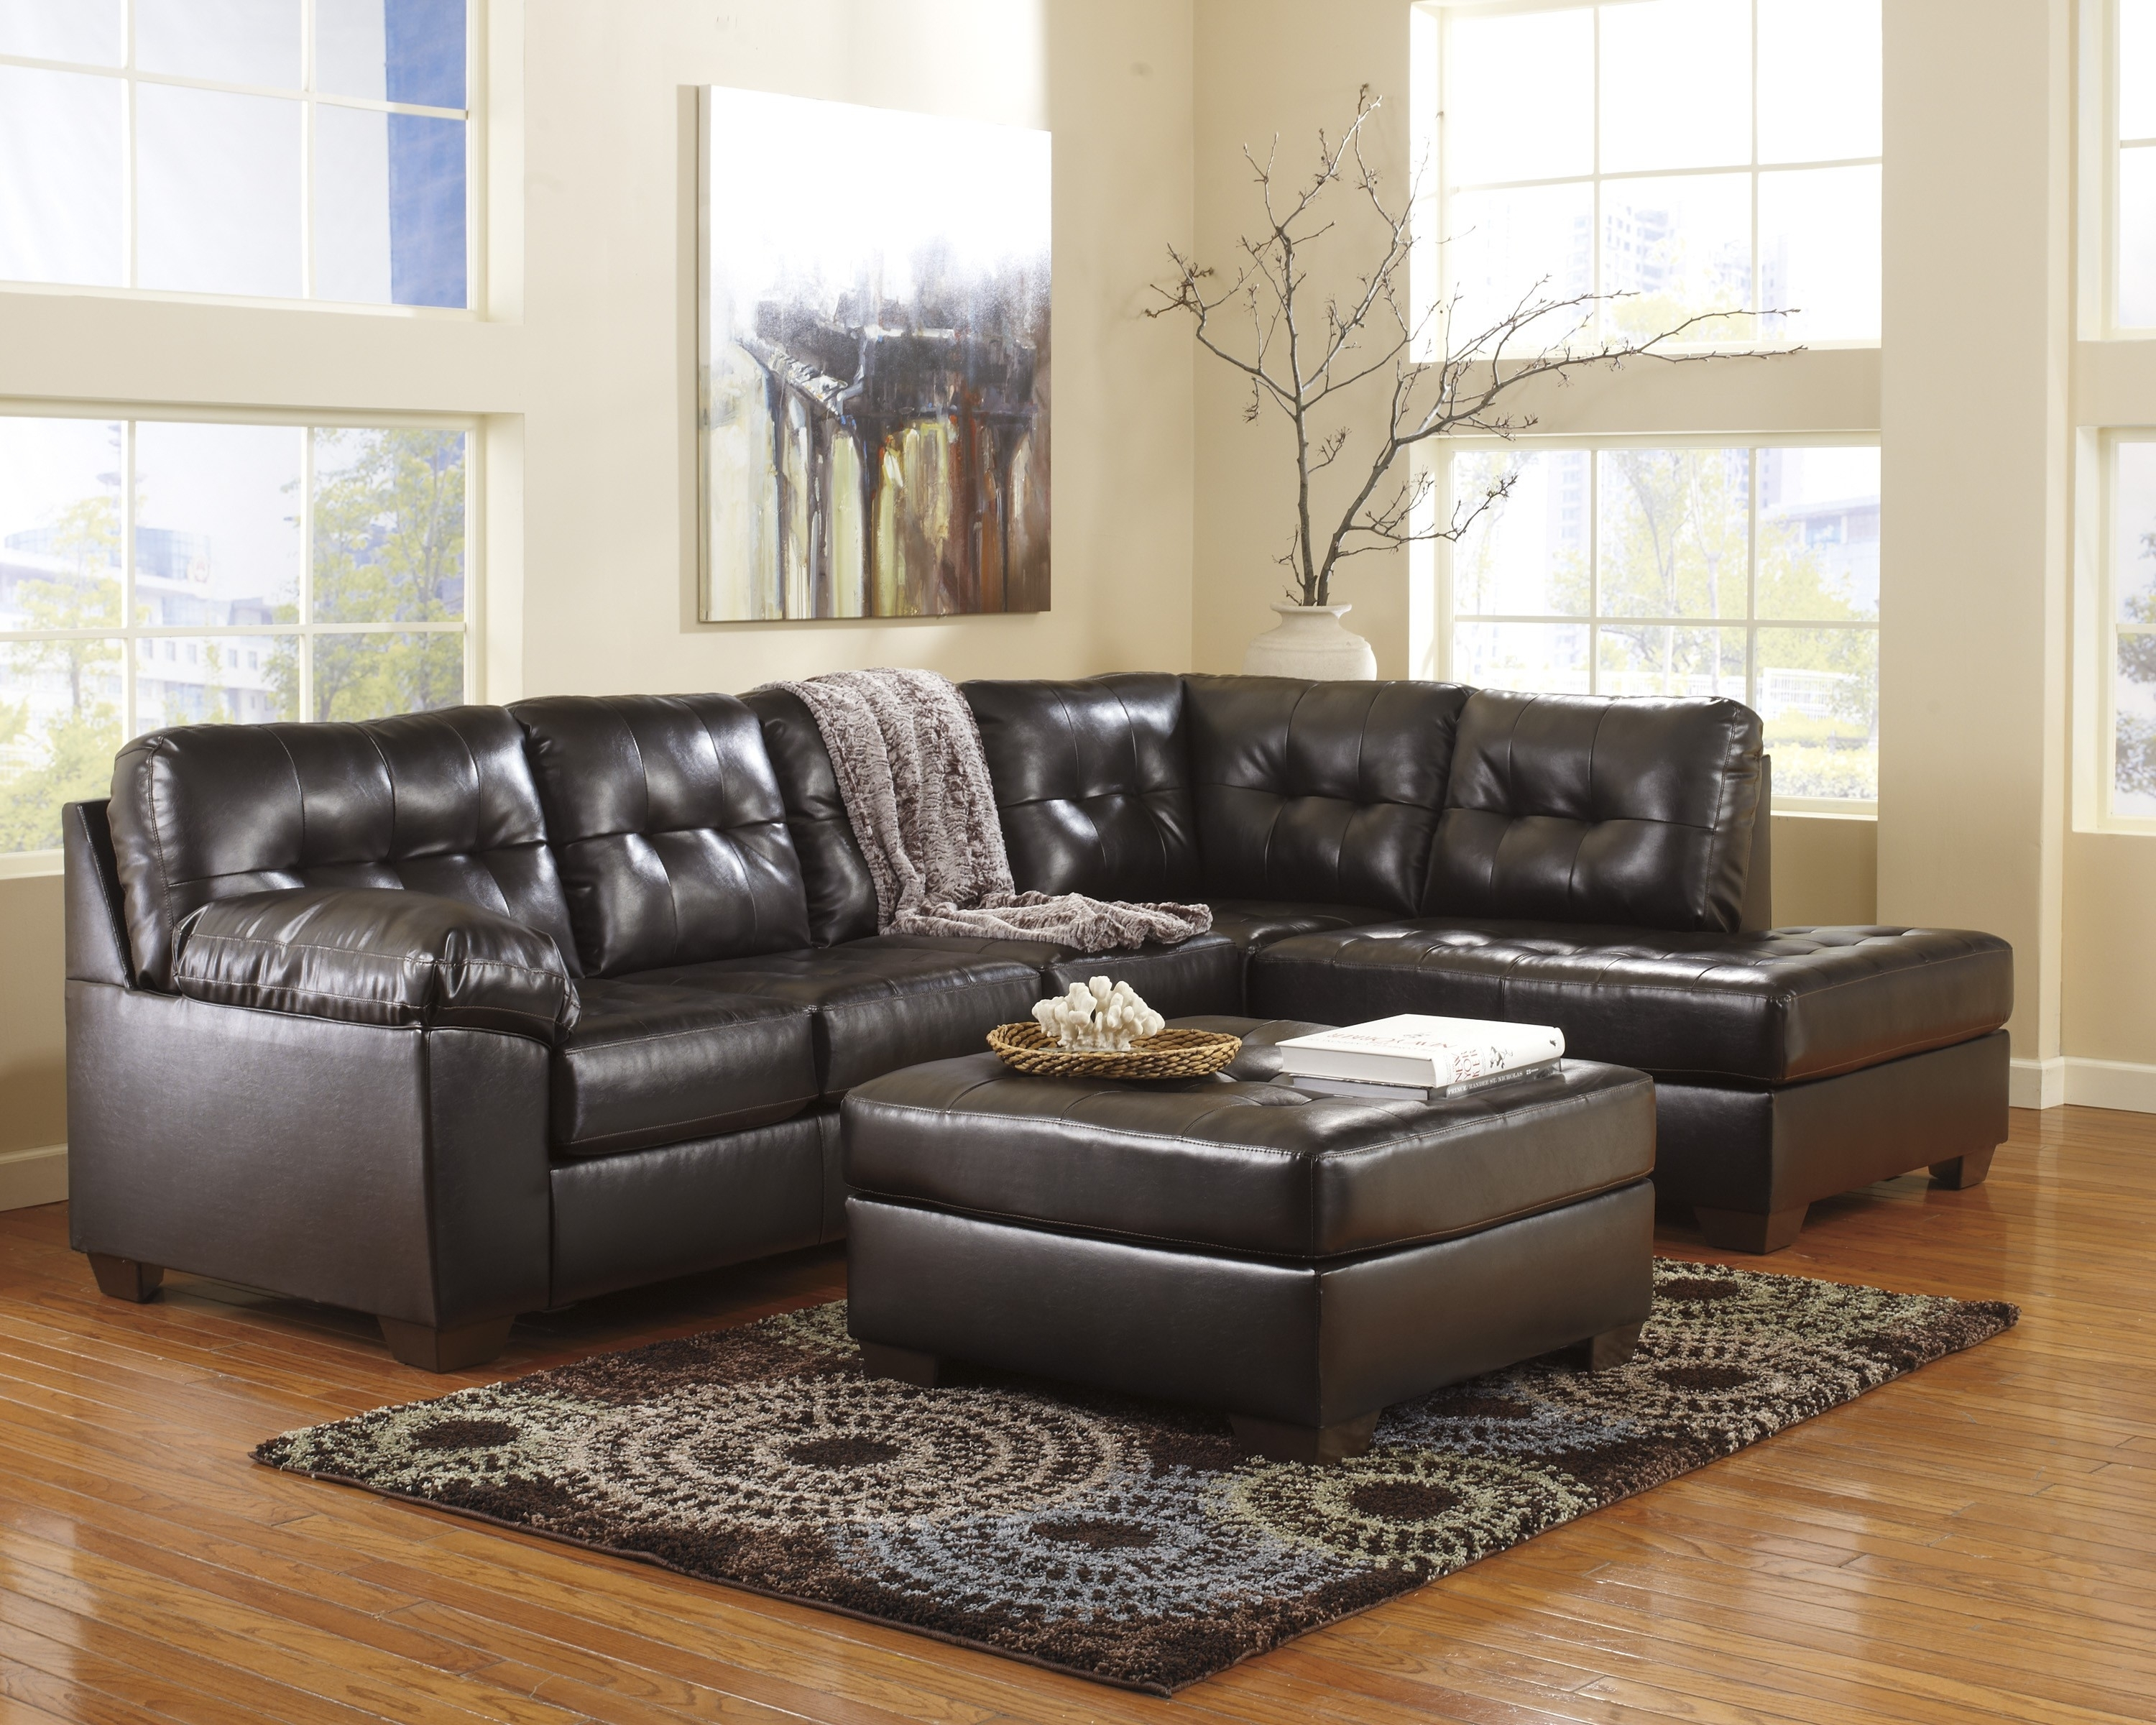 Chocolate Sectional Sofa Set With Chaise | Baci Living Room Pertaining To Norfolk Chocolate 6 Piece Sectionals With Laf Chaise (View 16 of 25)